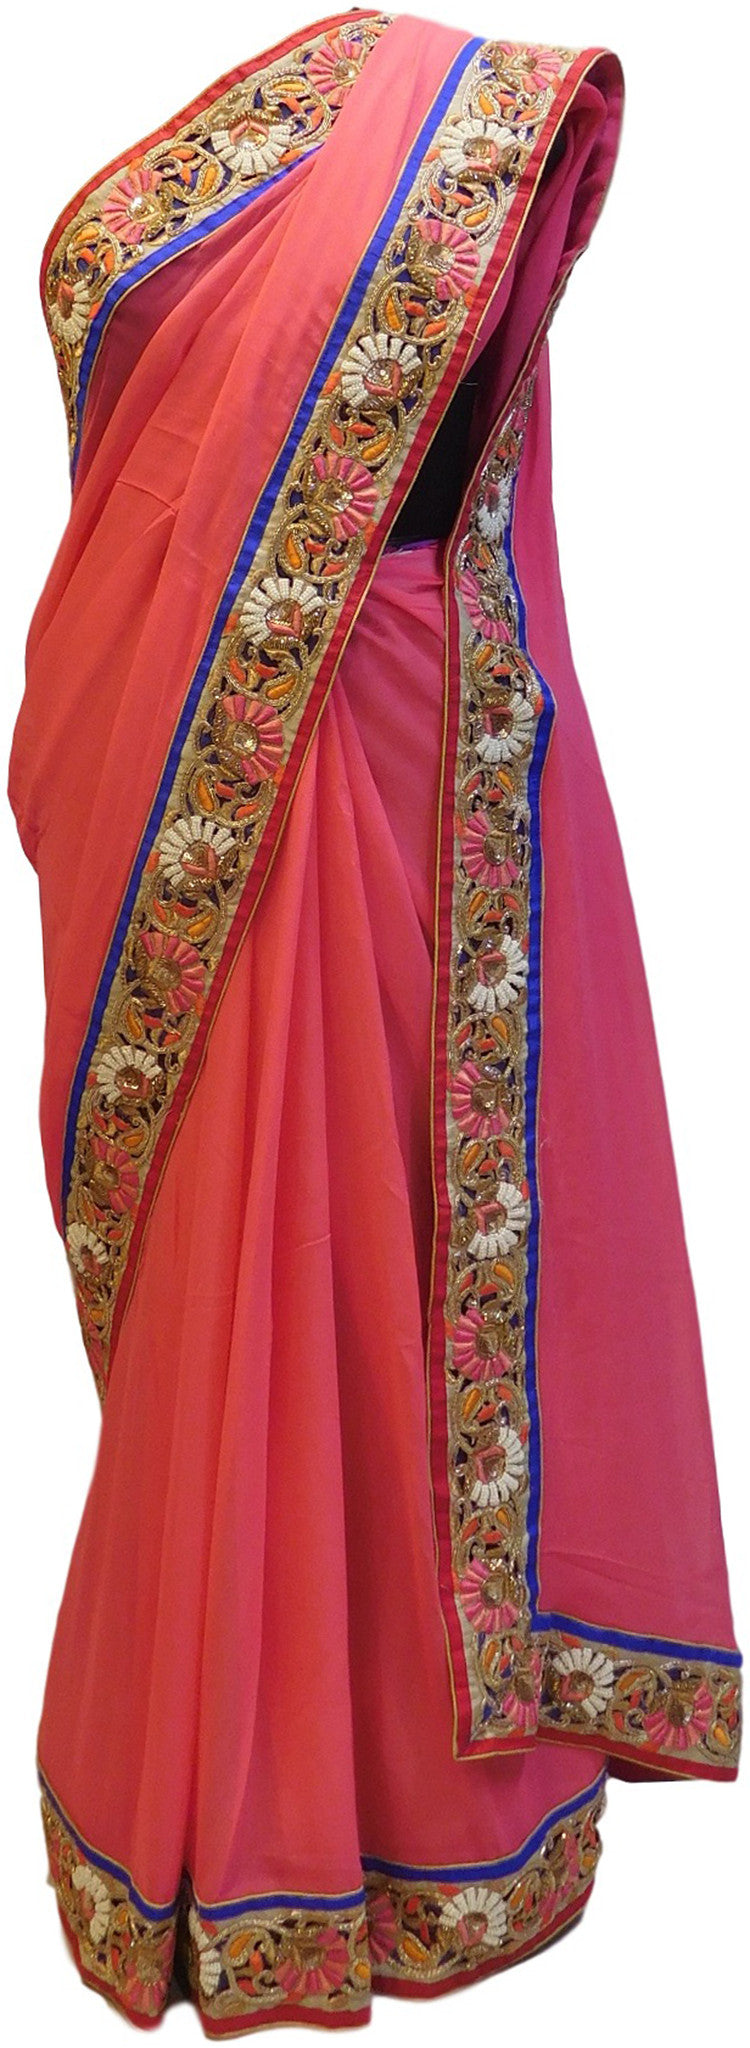 Pink Designer Georgette Saree With Cutdana, Pearl, Sequence, Bullion Work Border